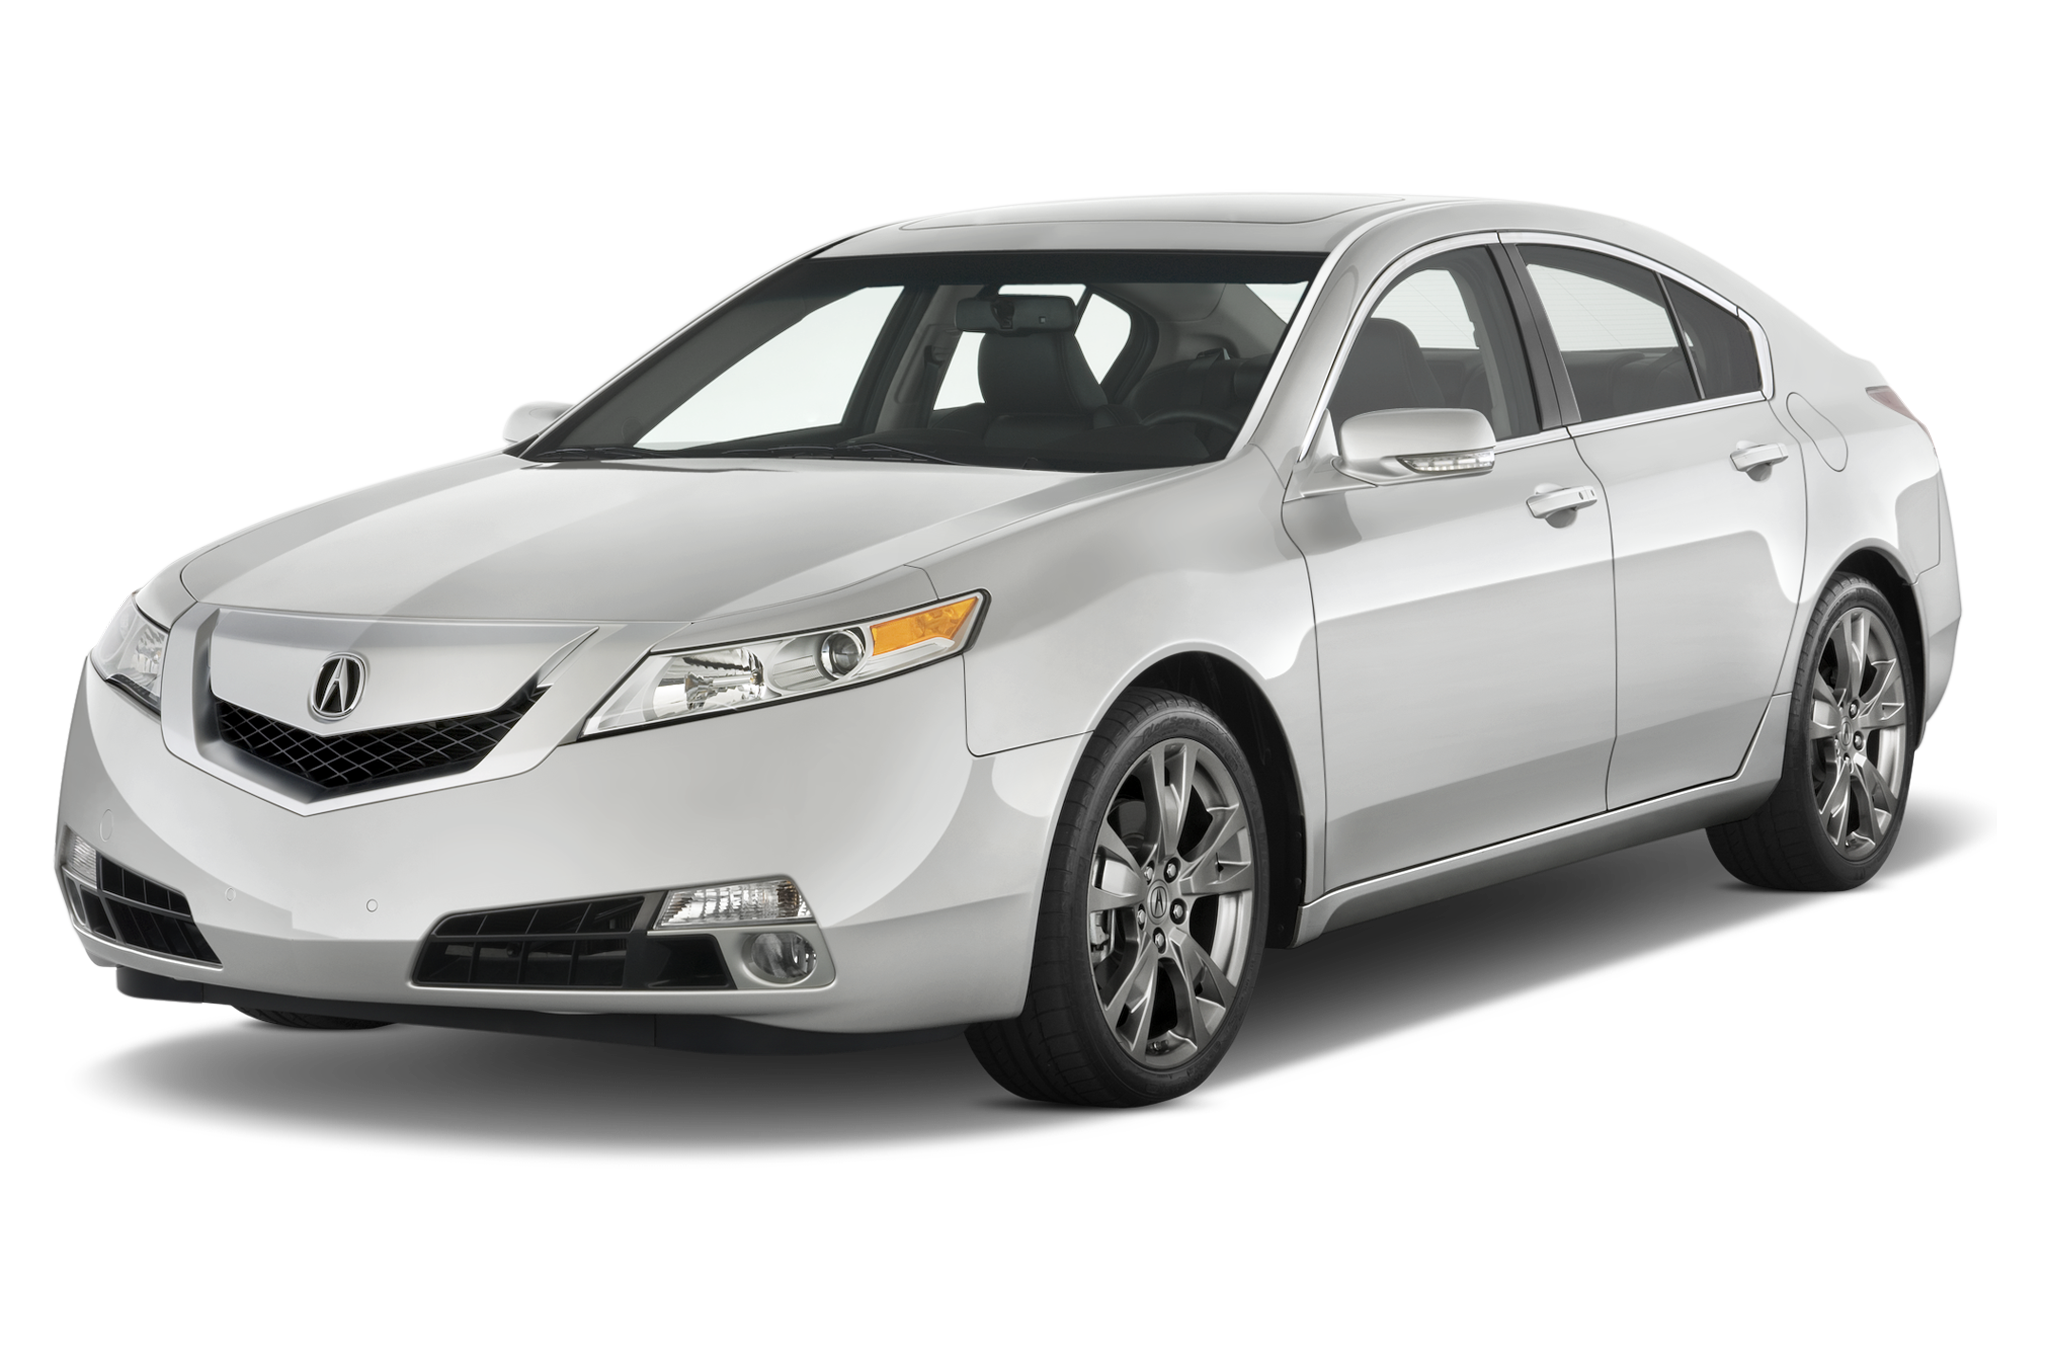 Acura Tl Sh Awd Review >> 2010 Acura TL SH-AWD 6MT - Acura Midsize Sedan Review - Automobile Magazine